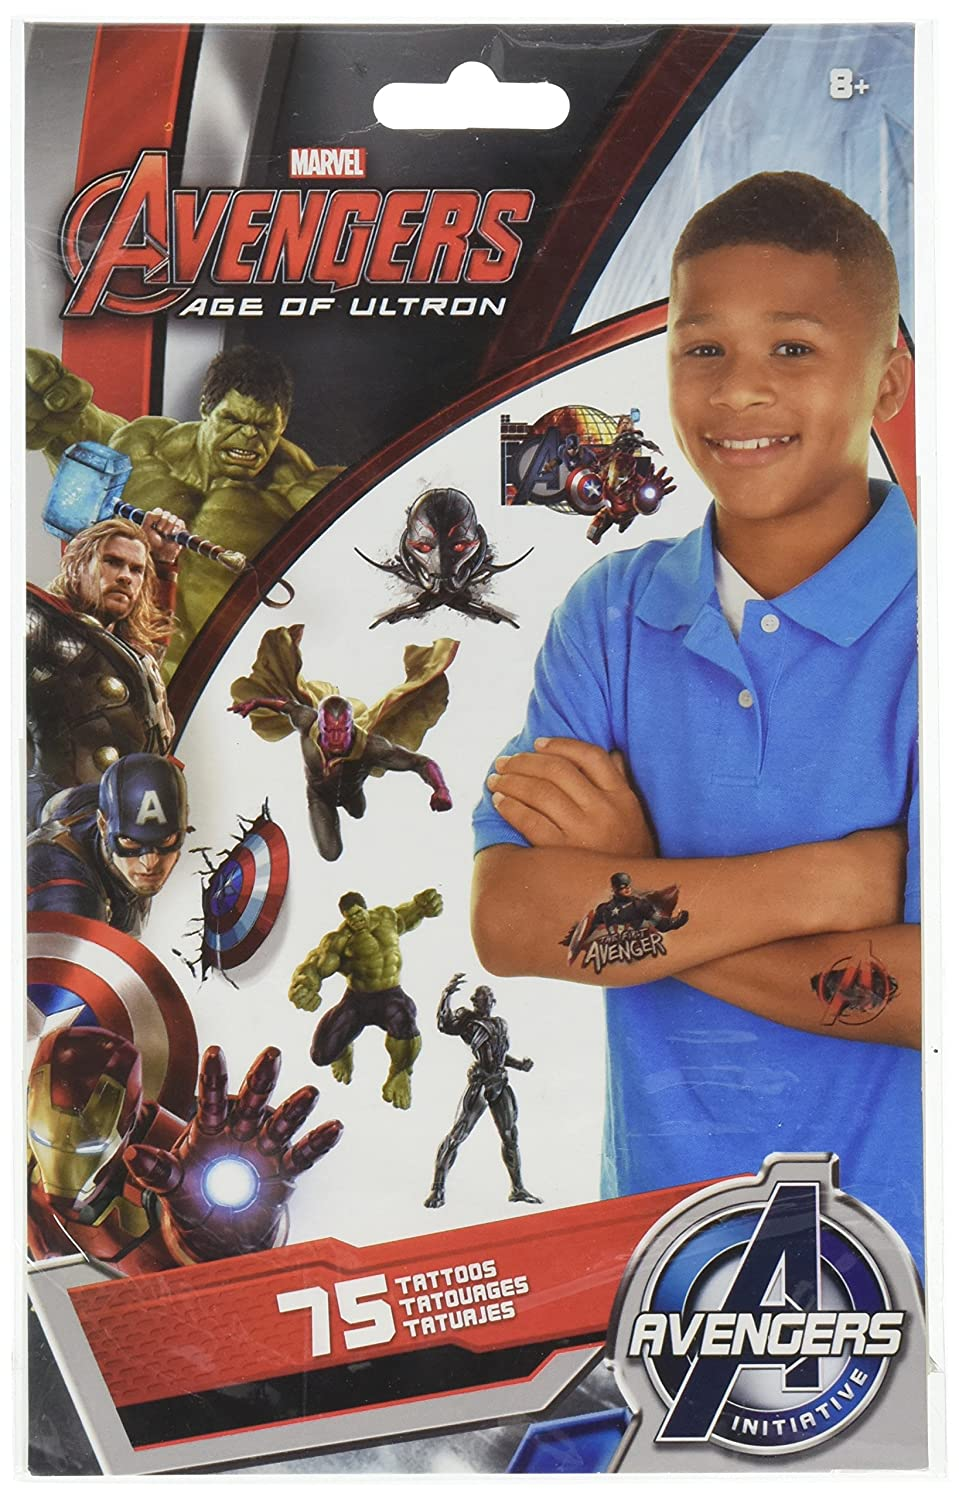 Avengers 2 - Age of Ultron Temporary Tattoos 75 ct: Amazon.es ...